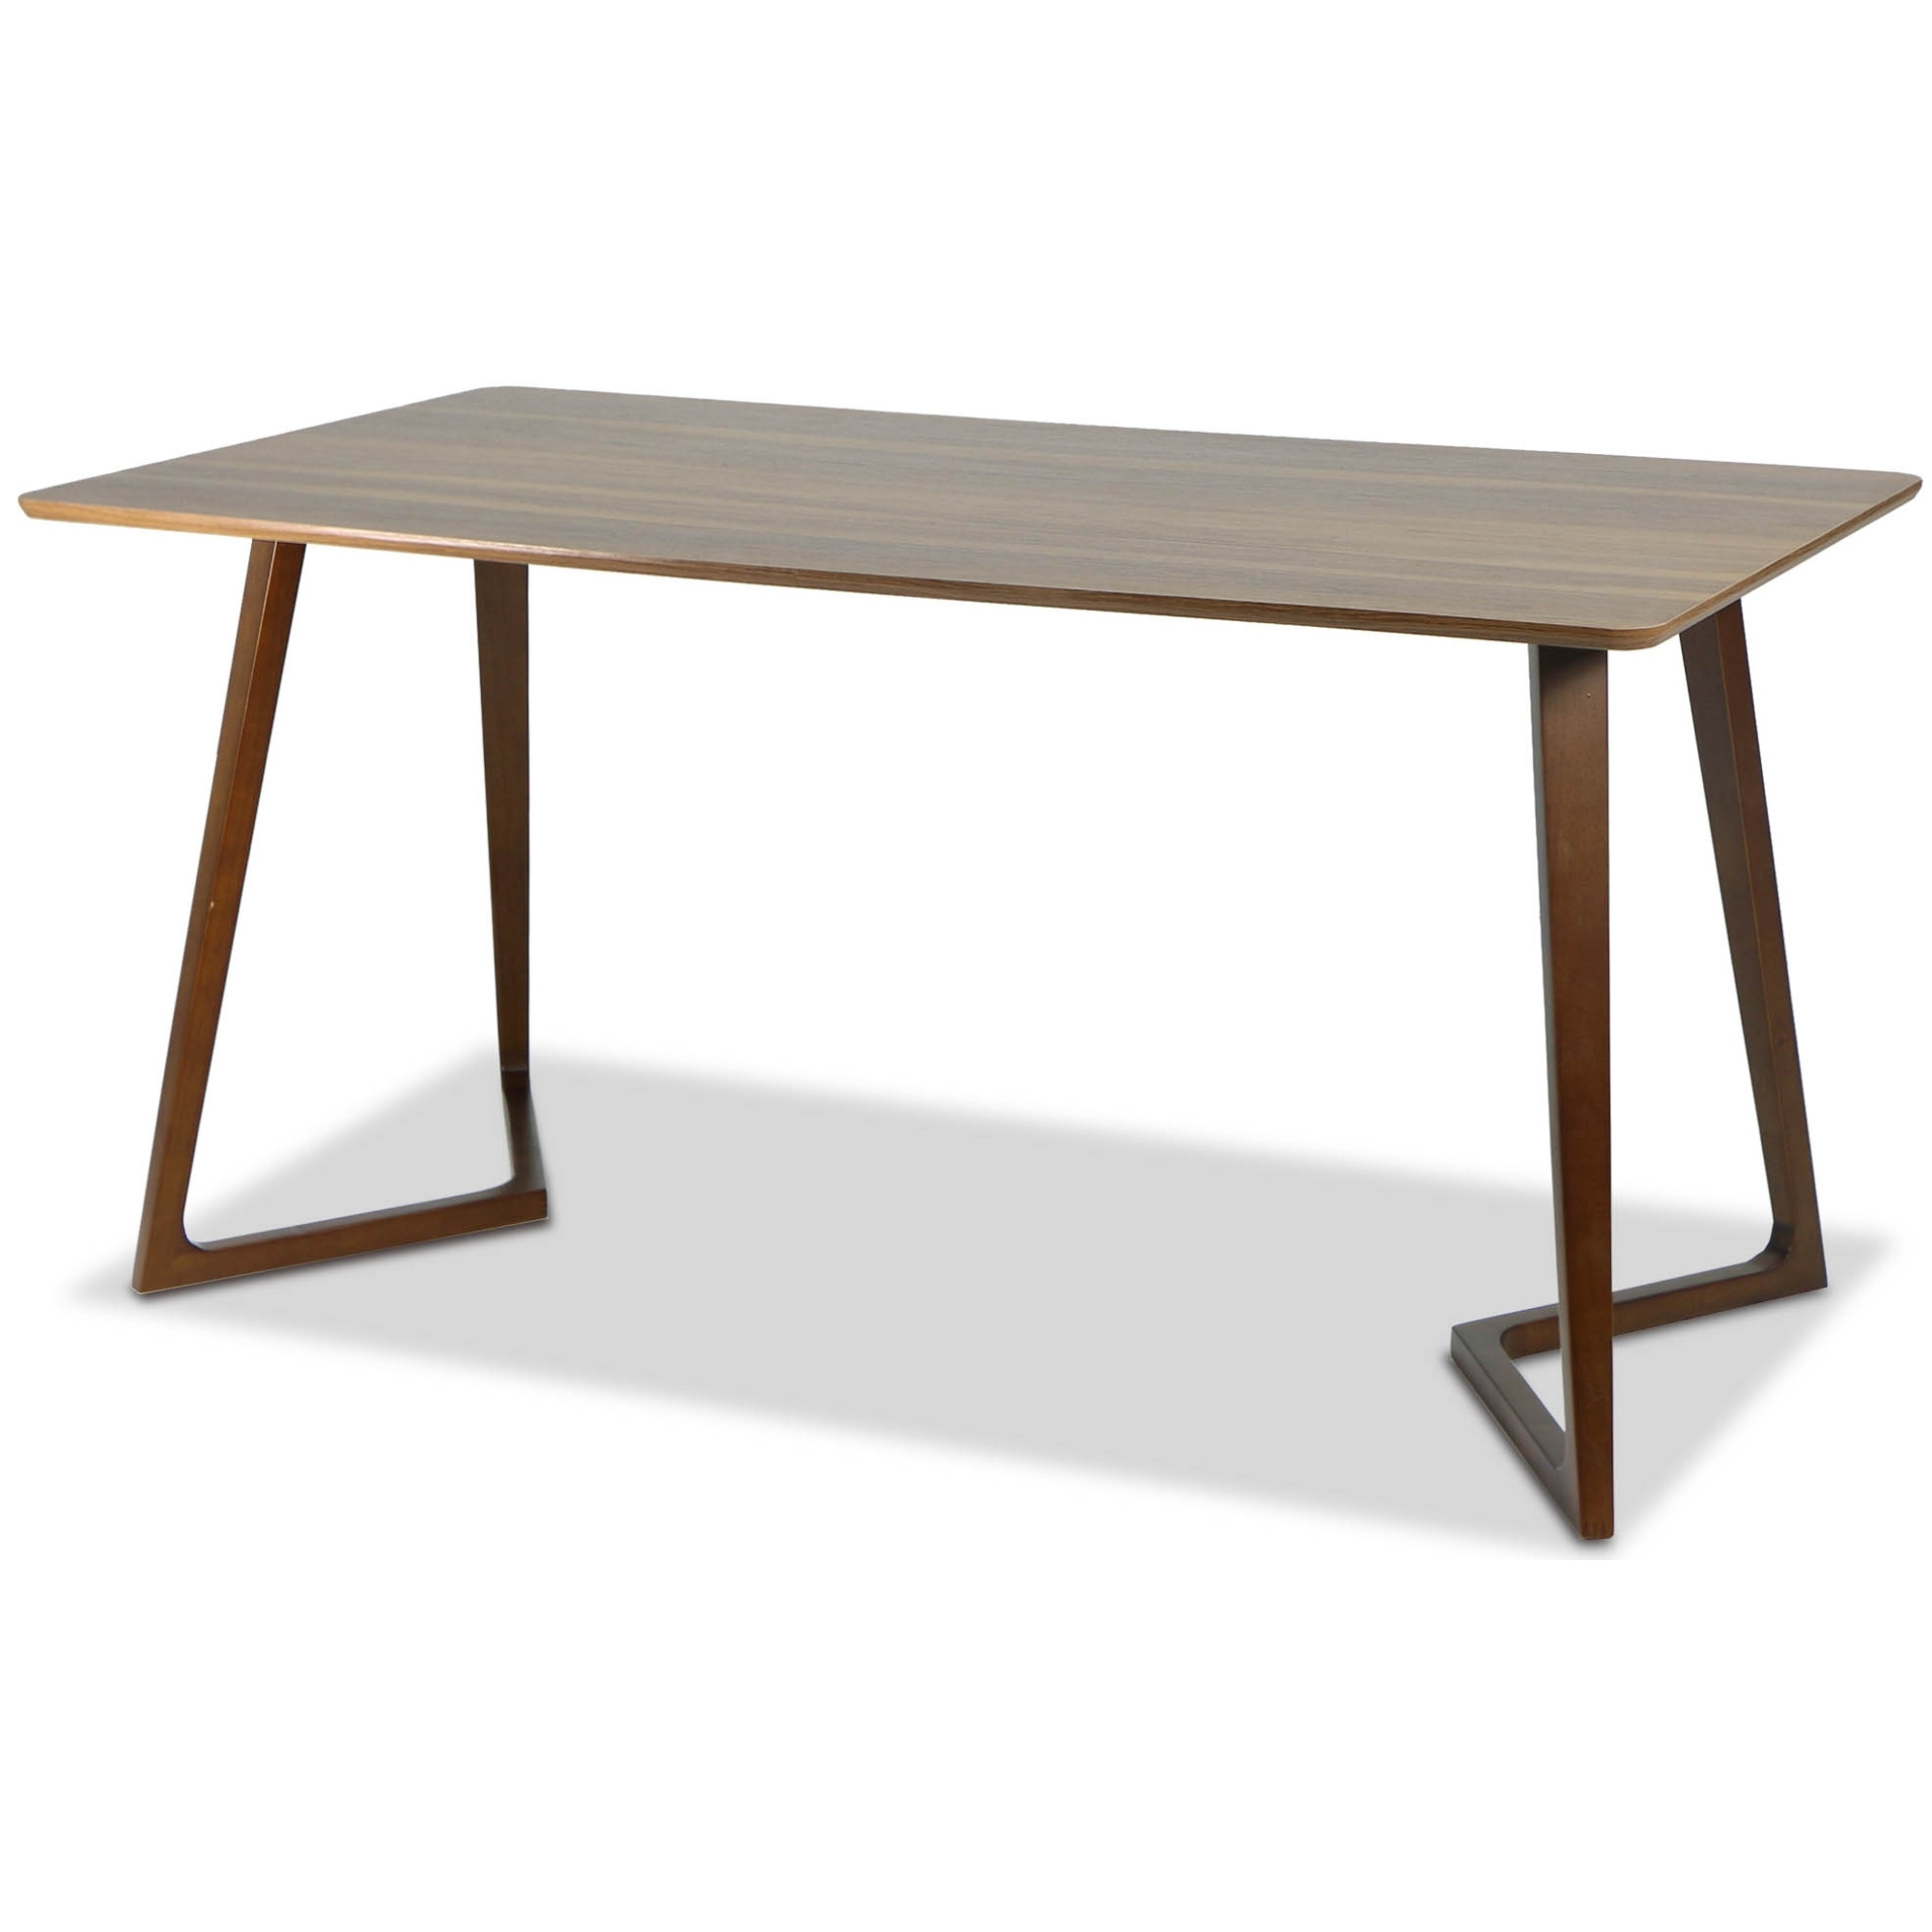 Well Known Weller Designer Wooden Dining Table (Walnut) For Wood Dining Tables (View 22 of 25)